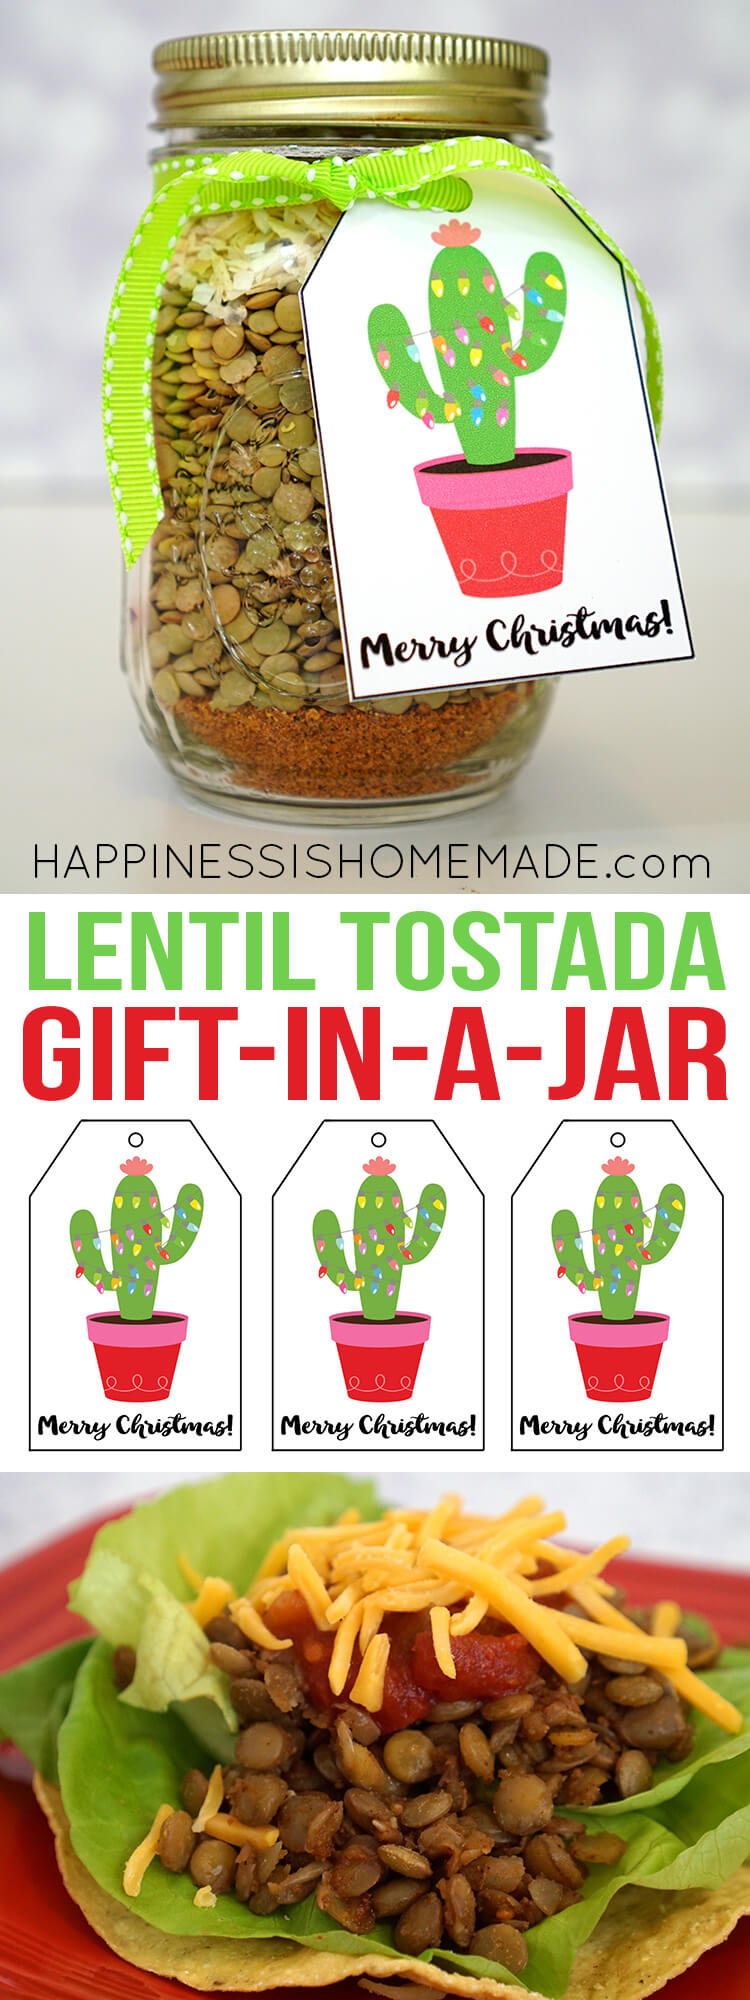 lentil-tostada-mix-gift-in-a-jar-and-printable-christmas-cactus-gift-tags